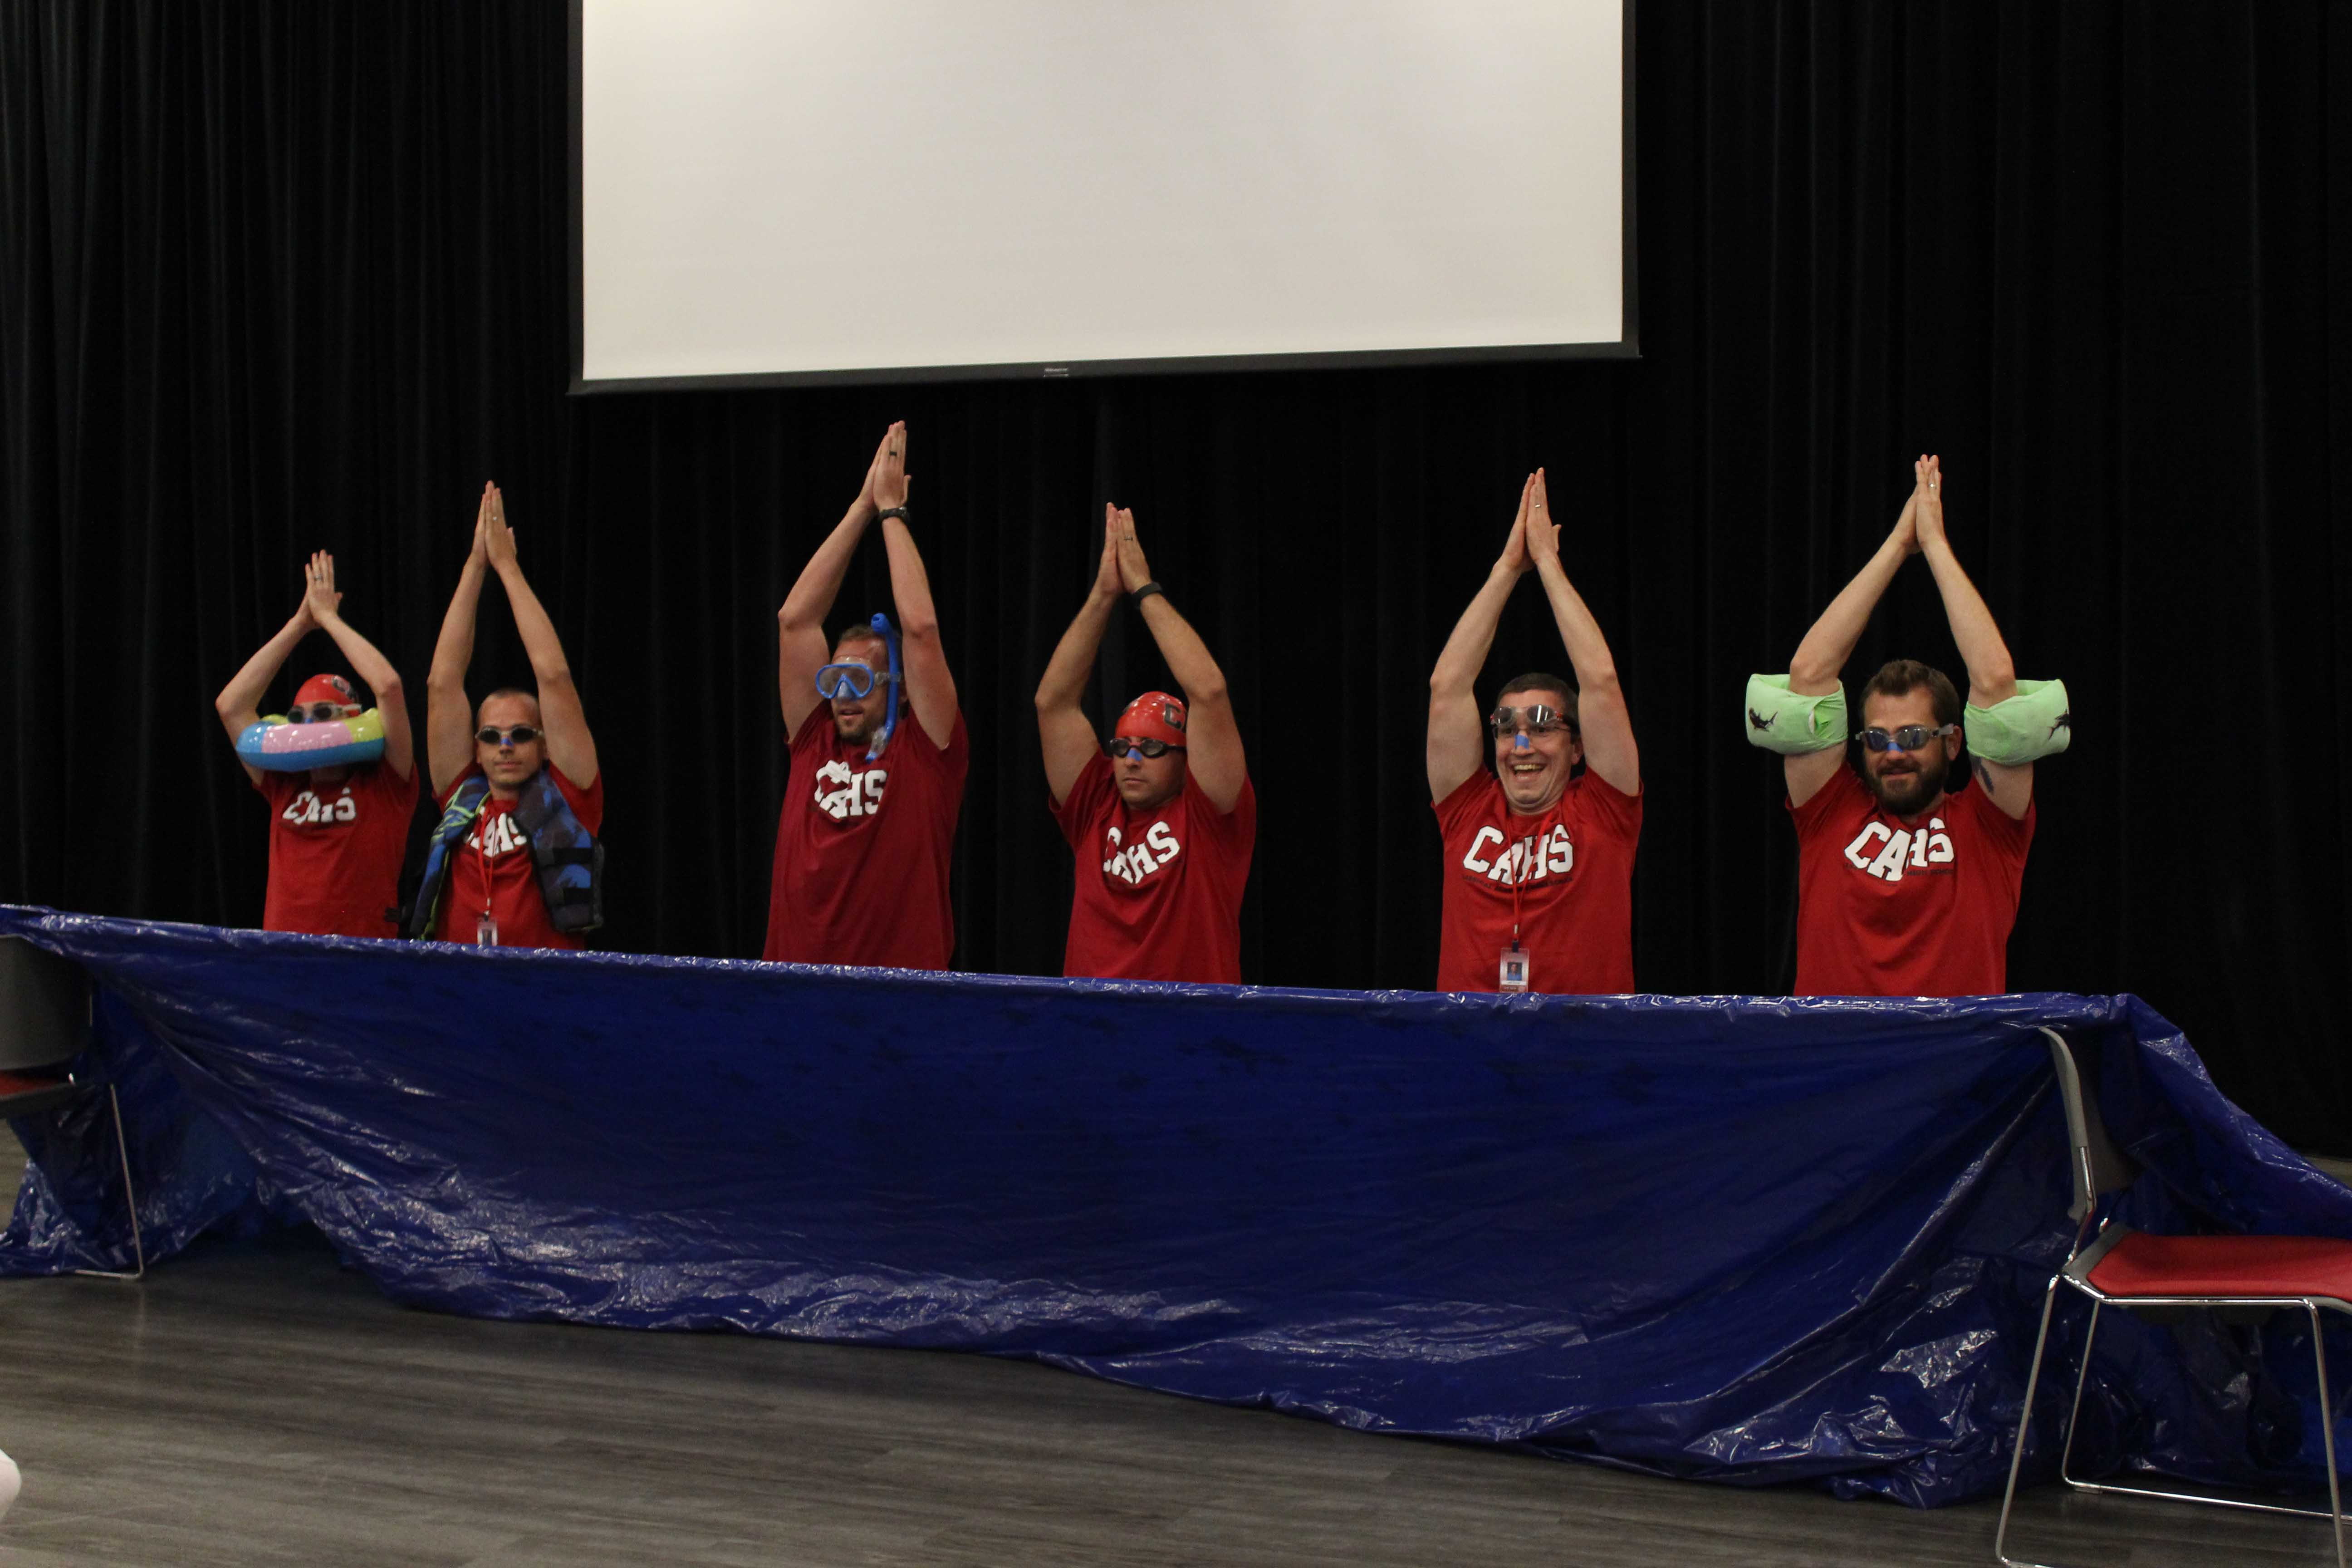 Some+of+the+male+teachers+perform+a+synchronized+swimming+routine.+Photos+taken+by+Crystal+Sung.+